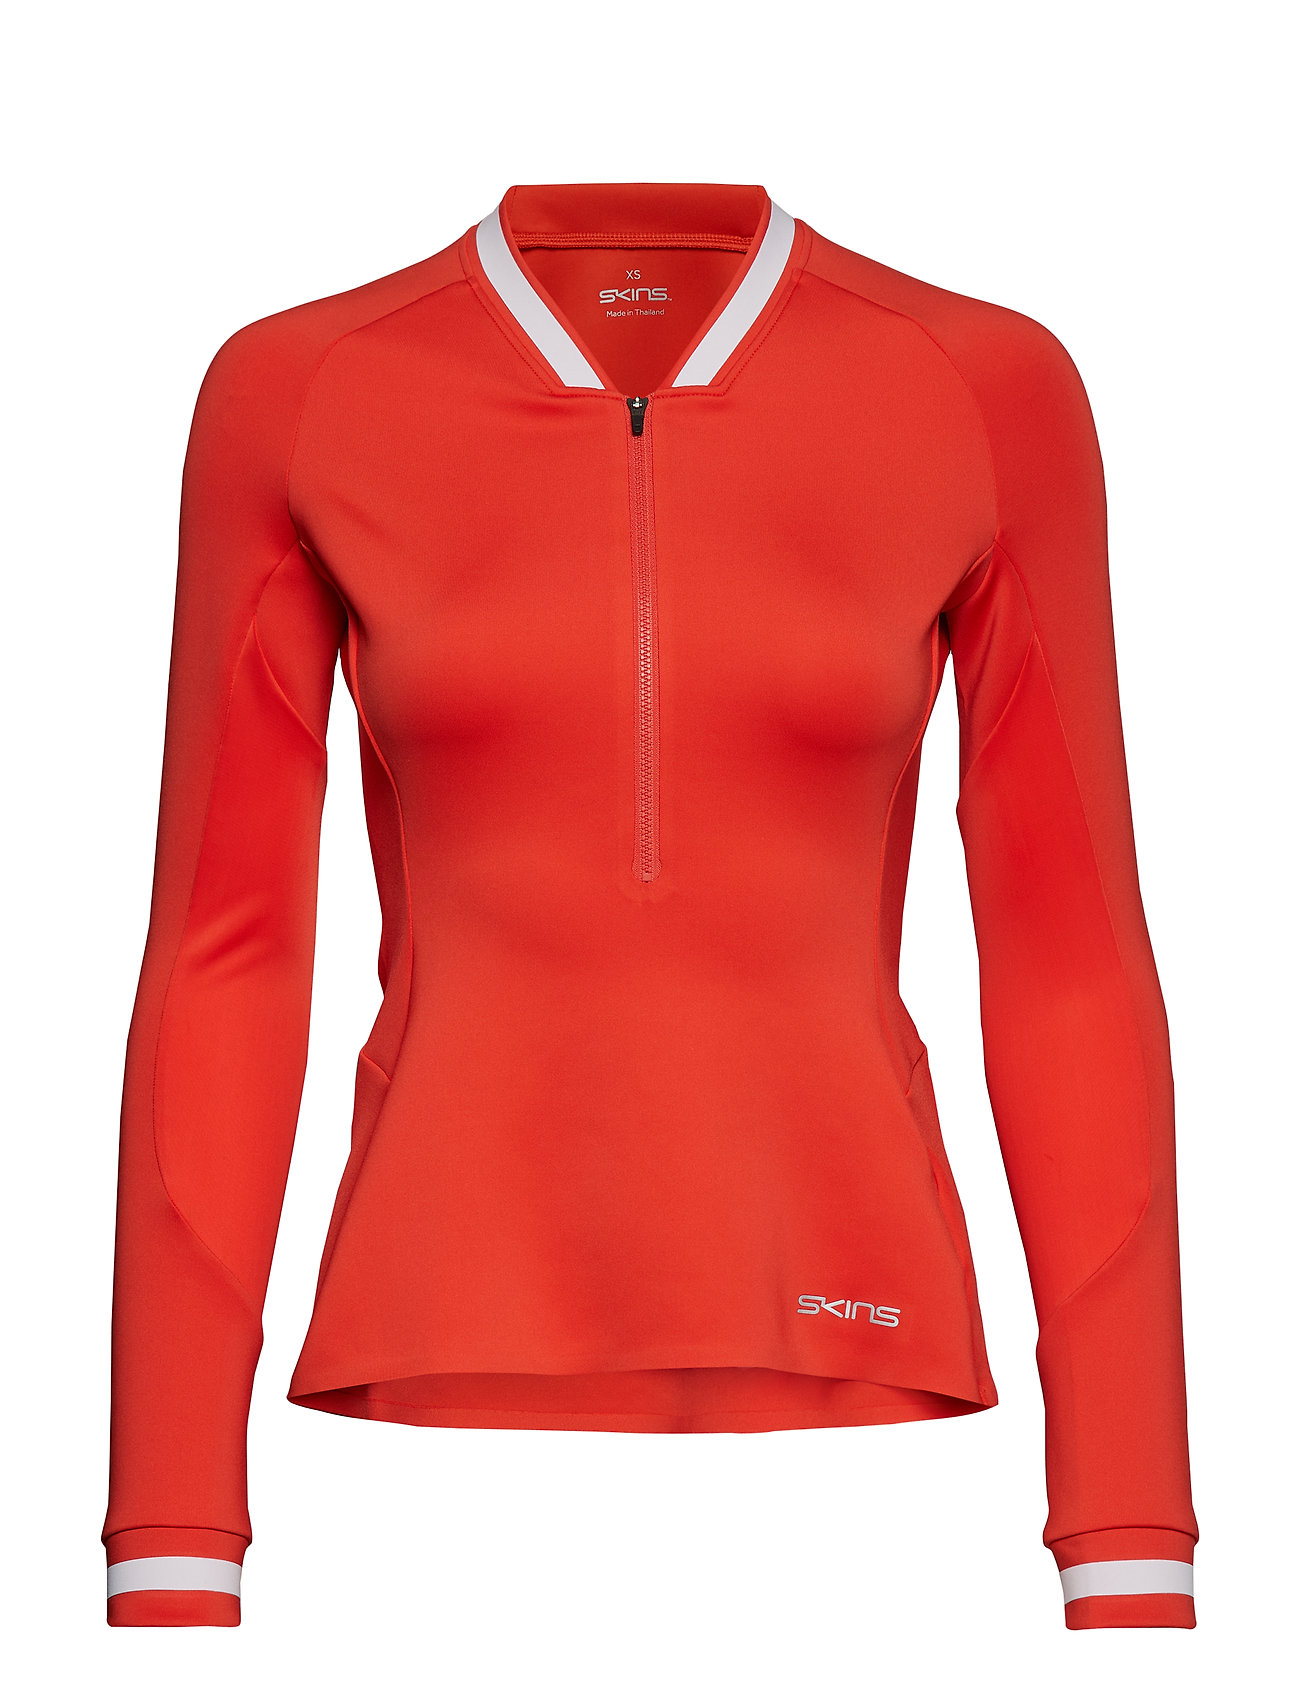 Skins Activewear Holm Womens Training L/S Fleece 1/2 Zip - CORAL RED/WHITE